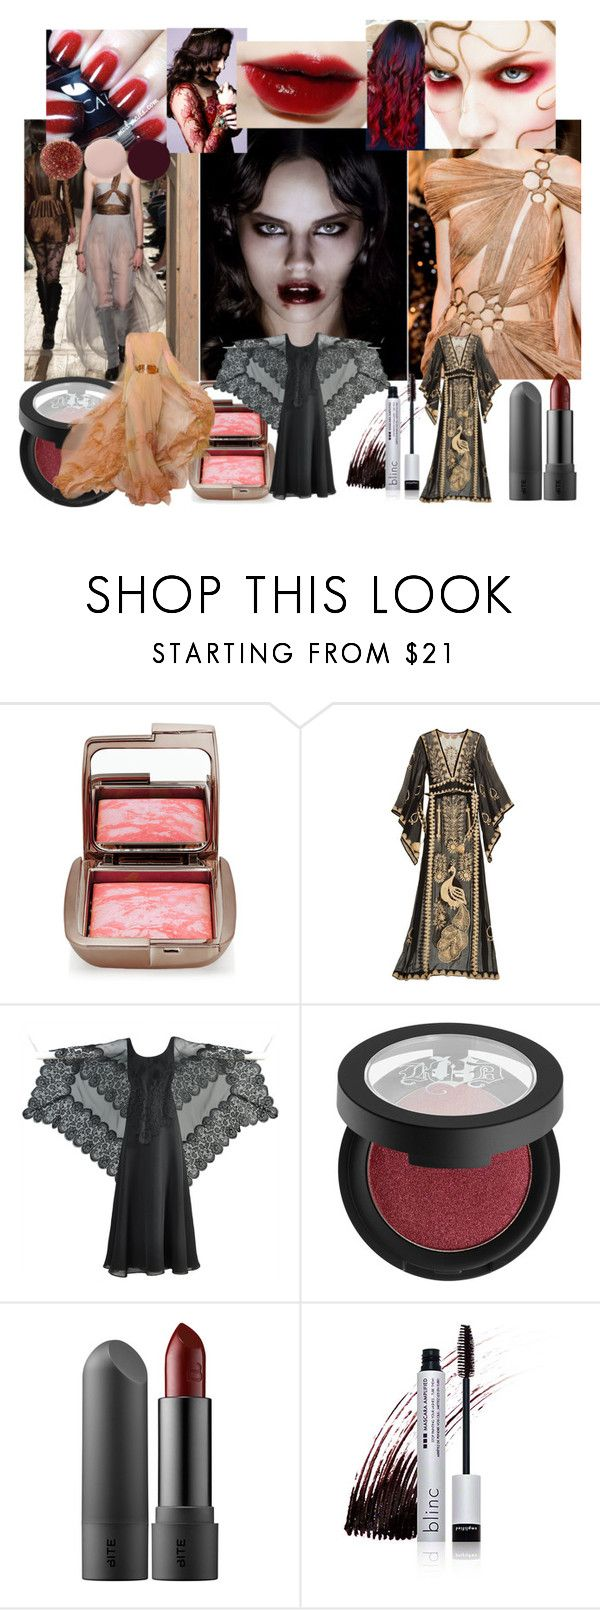 """""""The Devourer"""" by verysmallgoddess ❤ liked on Polyvore featuring beauty, Hourglass Cosmetics, Calypso St. Barth, Ruben Panis, Kat Von D, Stephane Rolland, Blinc, Nails Inc., Sexy and redandblack"""